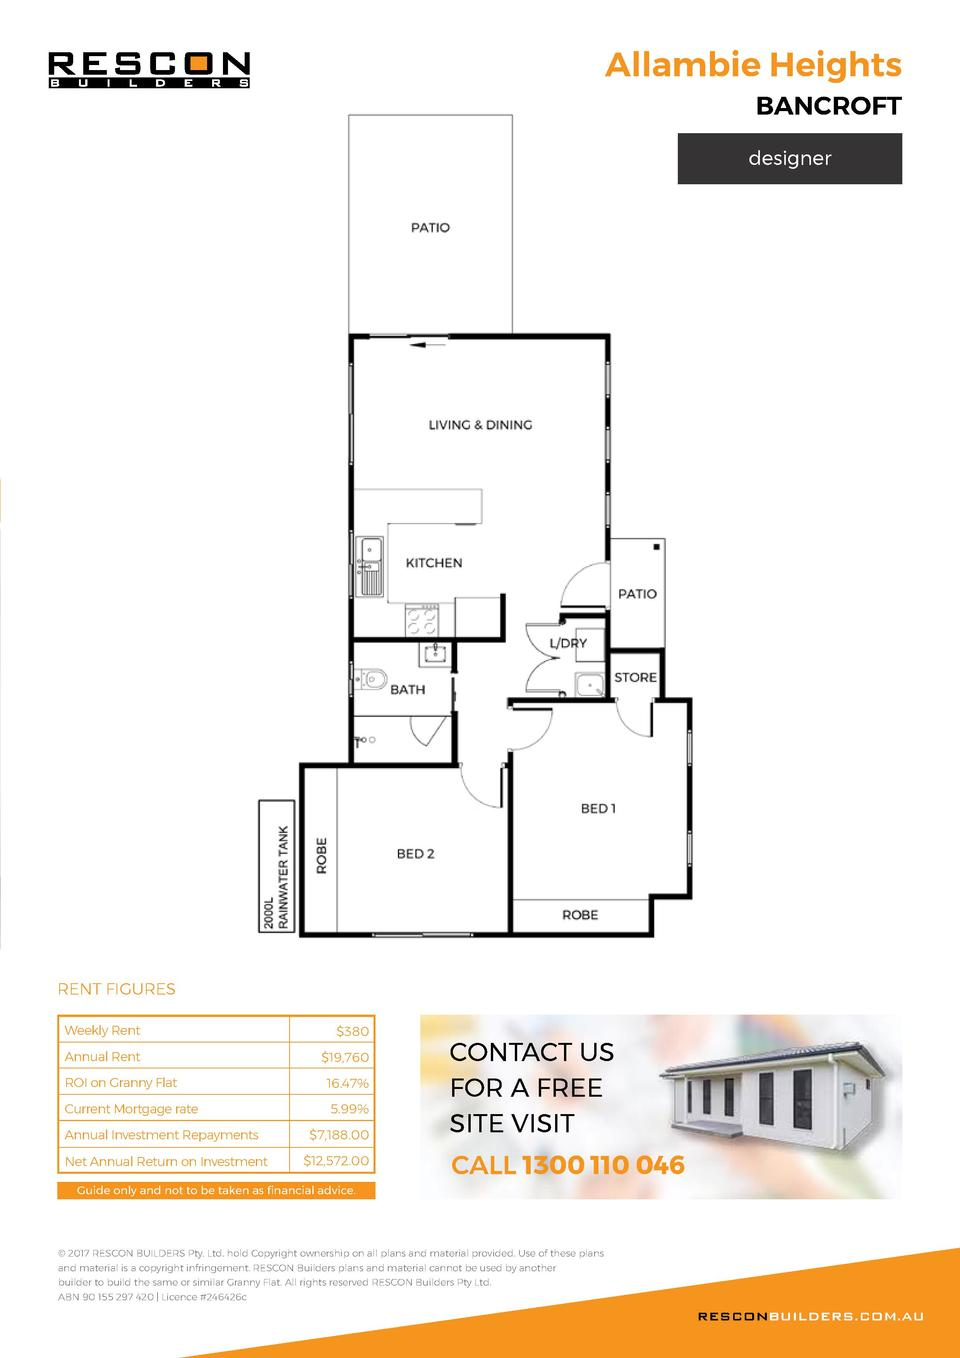 Allambie Heights BANCROFT  designer  RENT FIGURES Weekly Rent   380  Annual Rent   19,760  ROI on Granny Flat  16.47   Cur...